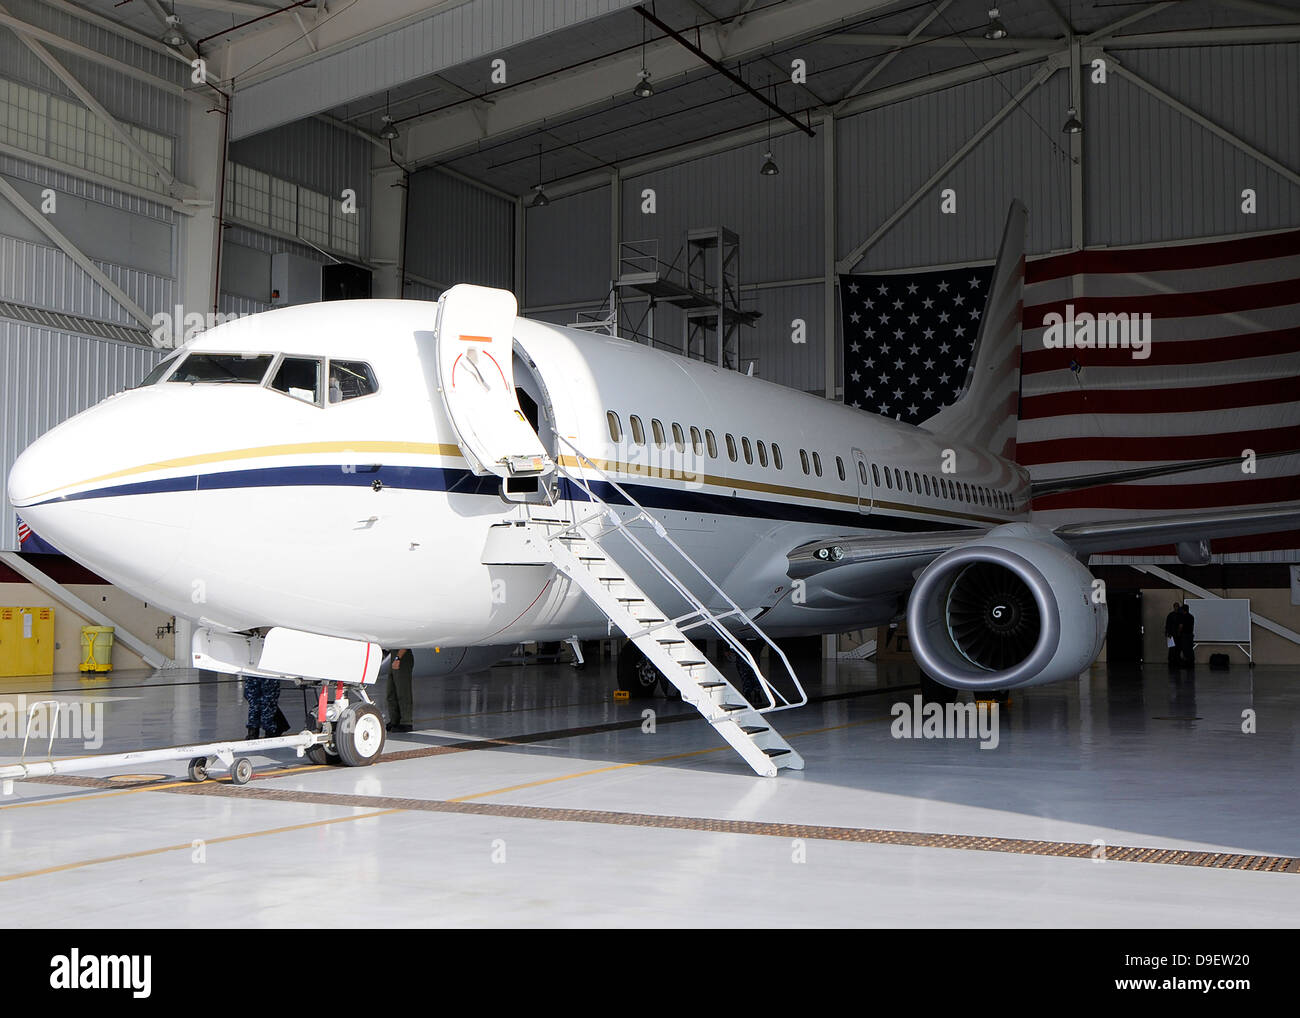 A C-40 Clipper in a hangar after arriving at Naval Air Station North Island. Stock Photo